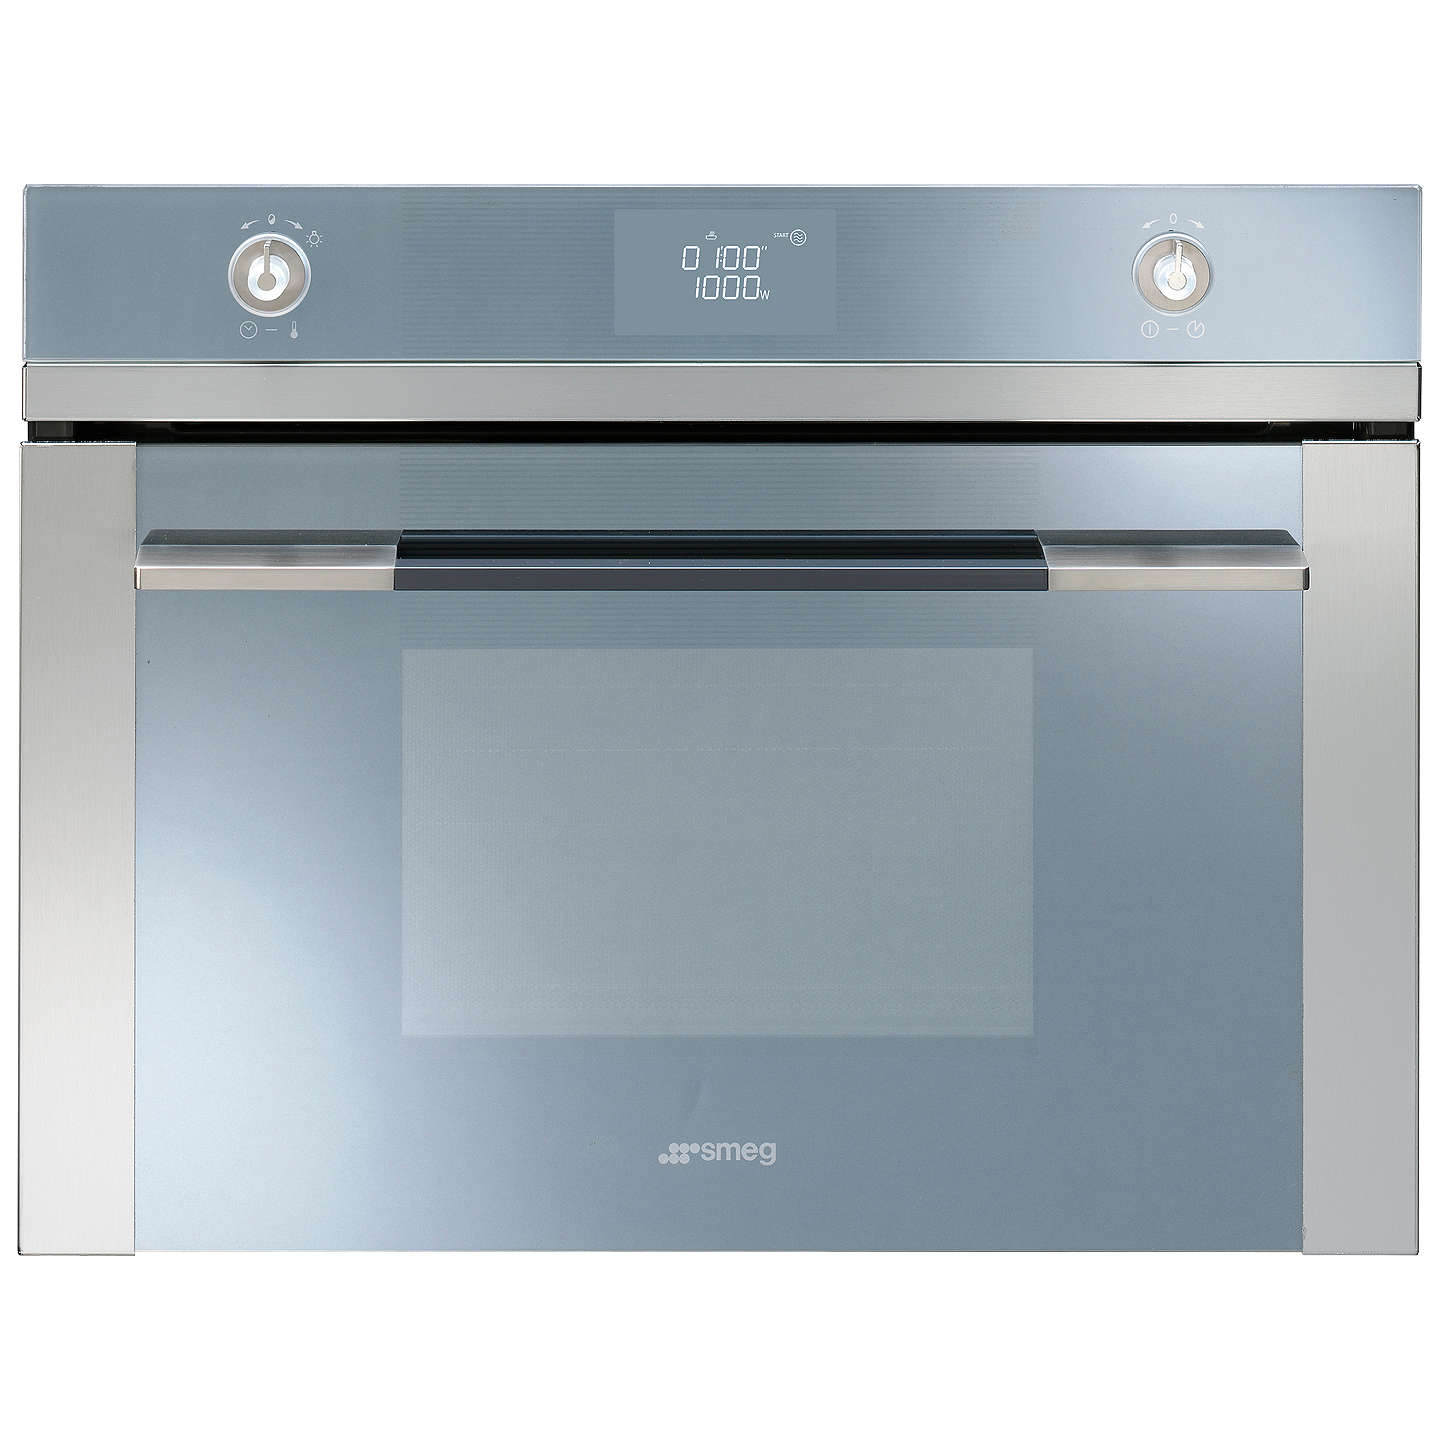 BuySMEG SF4120MC Linea Aesthetic Combination Microwave Oven, Stainless Steel Online at johnlewis.com